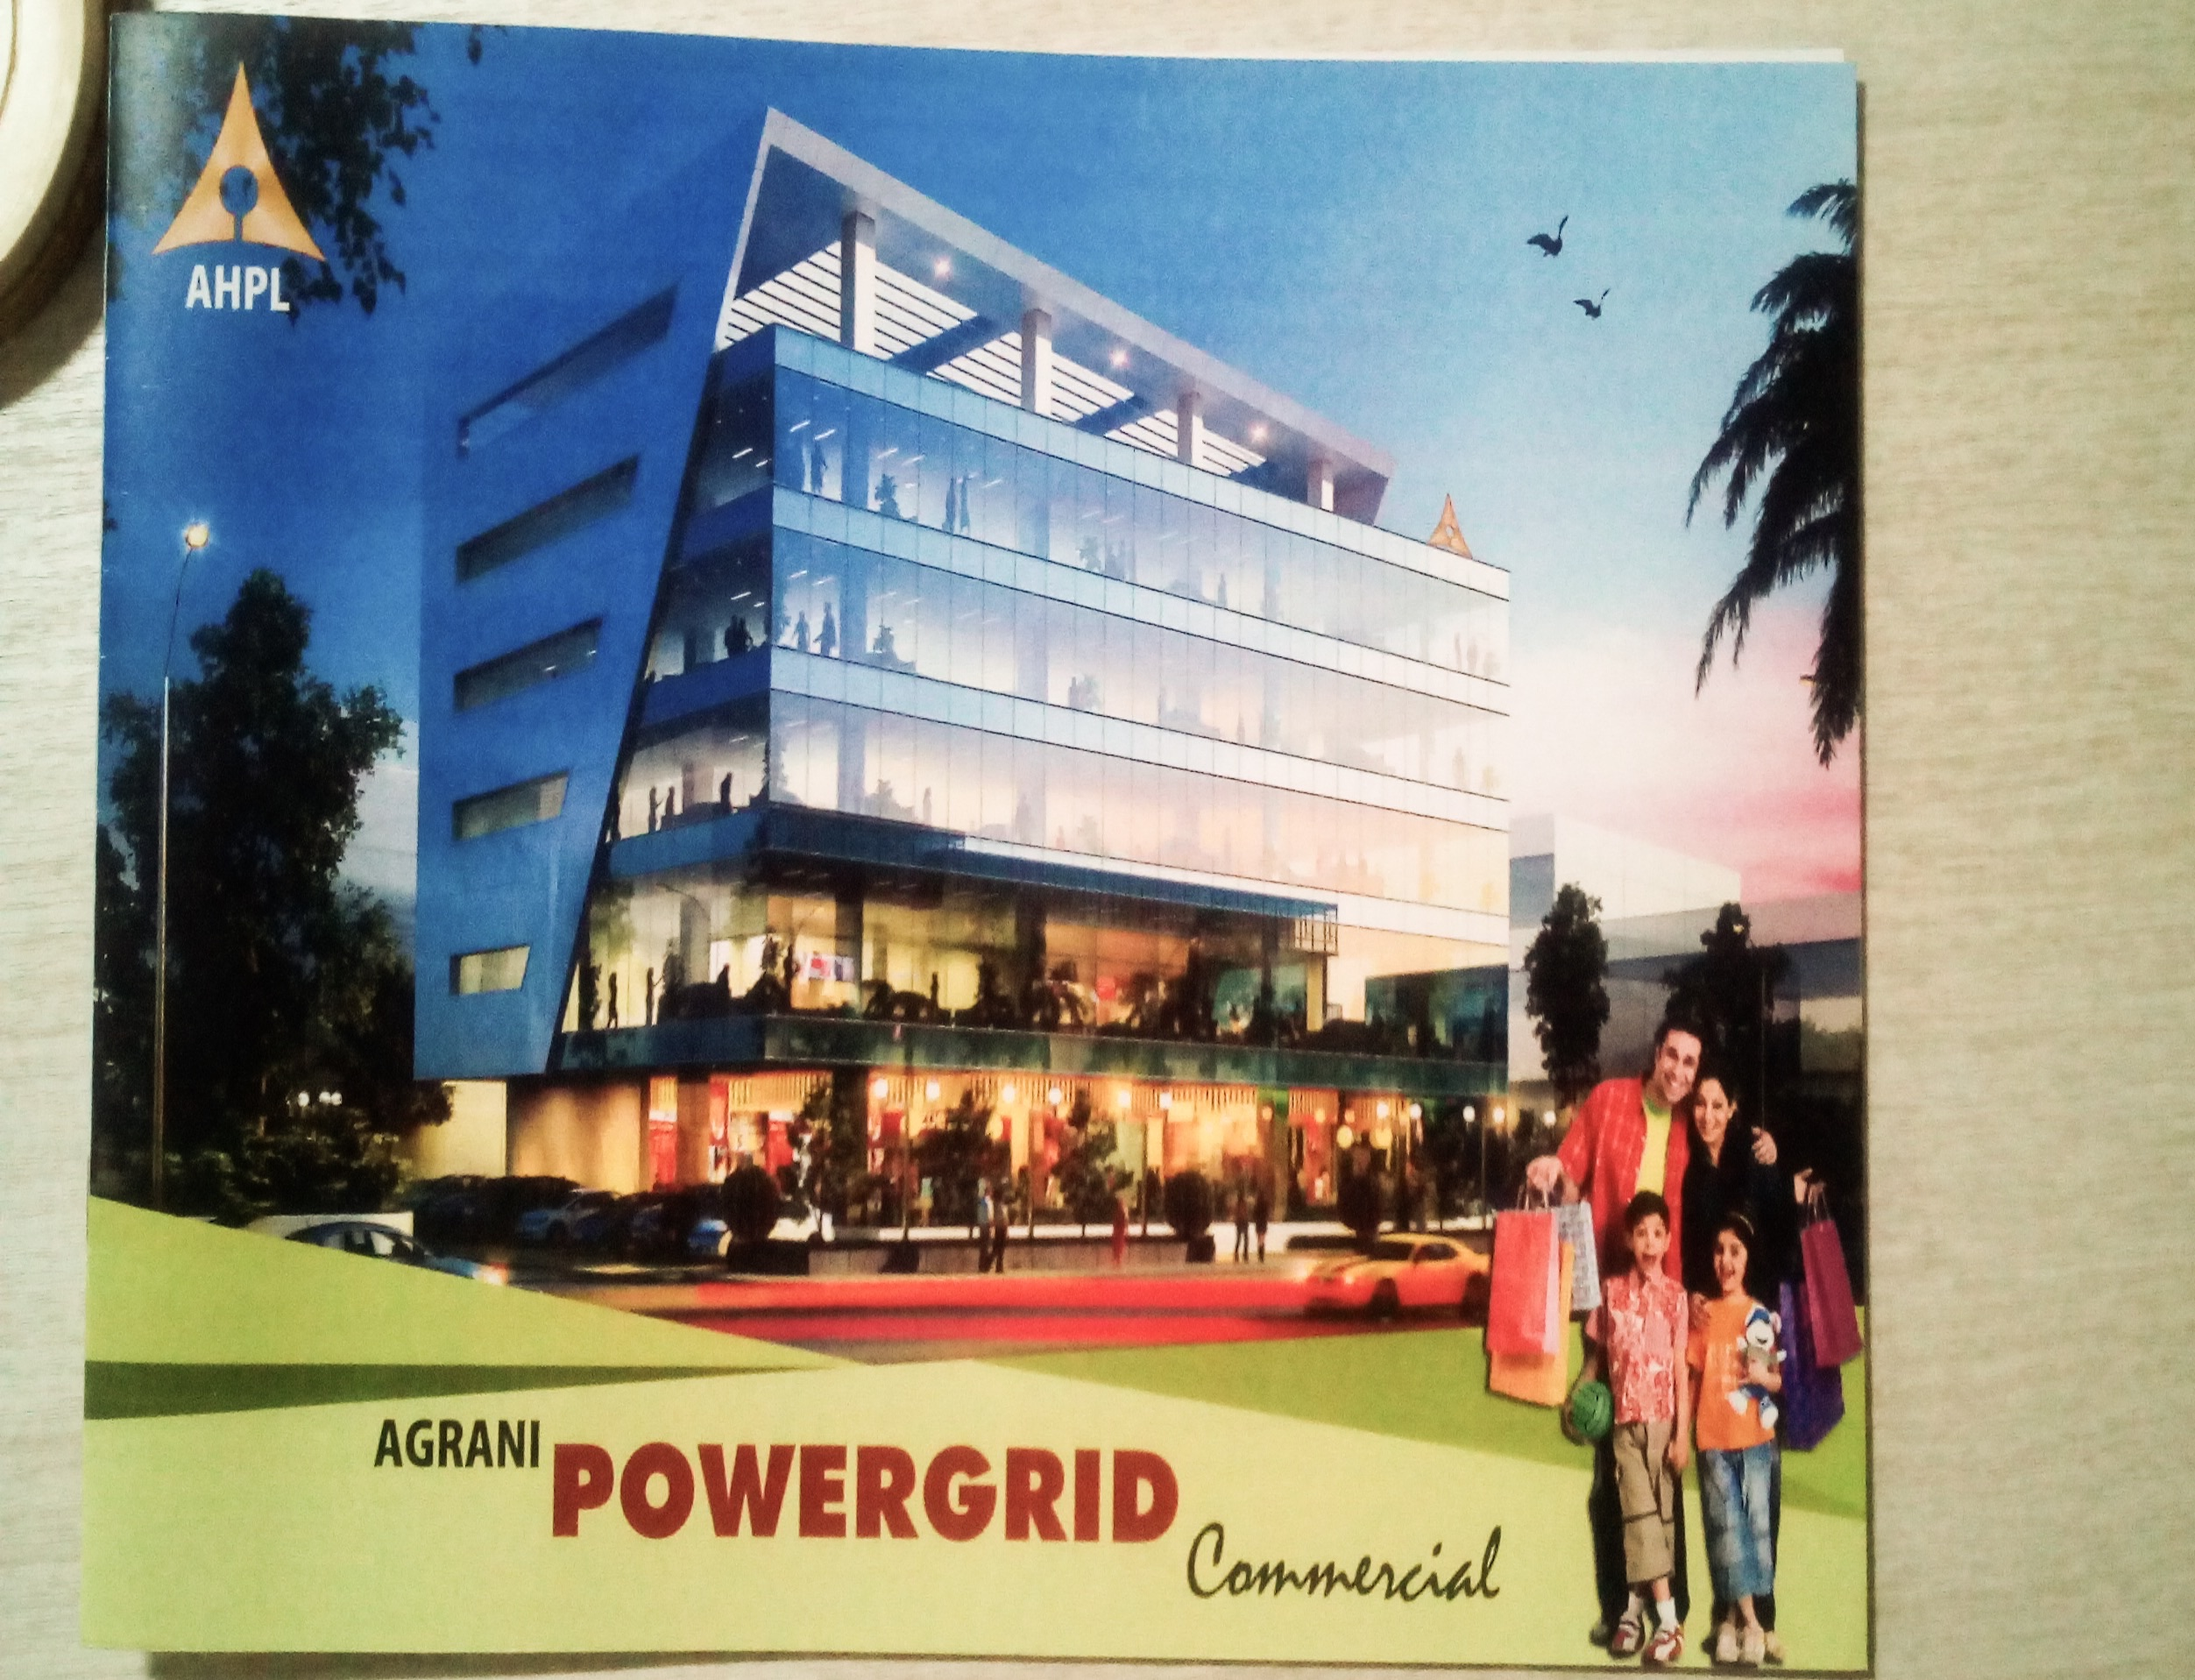 example- Commercial plot for sale near Danapur railway station